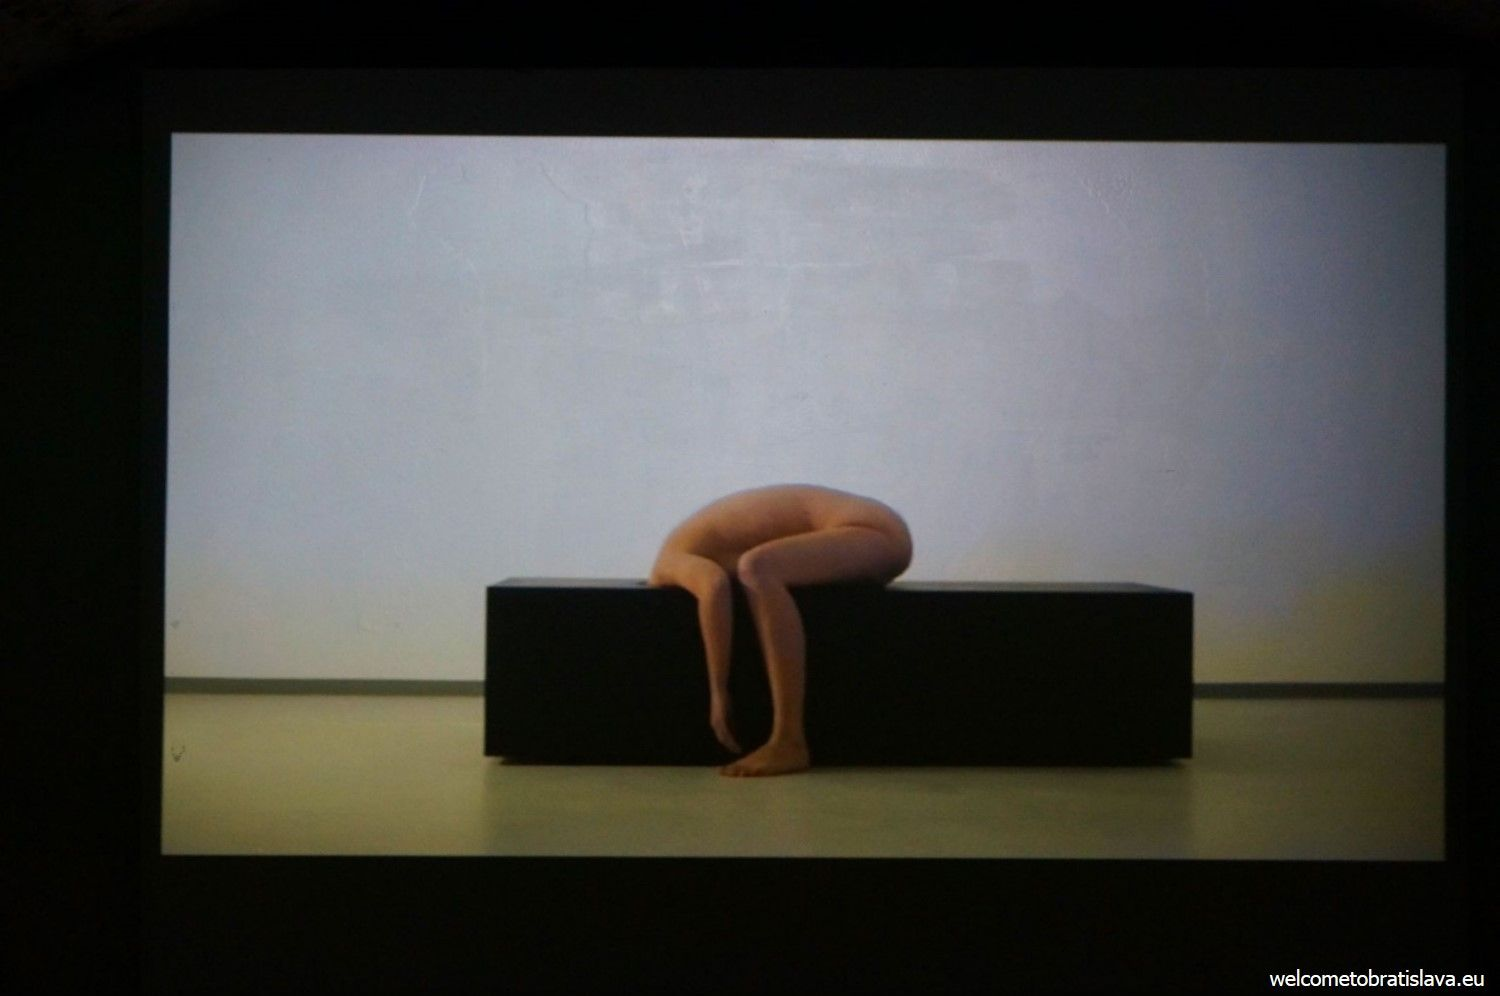 An example of video art